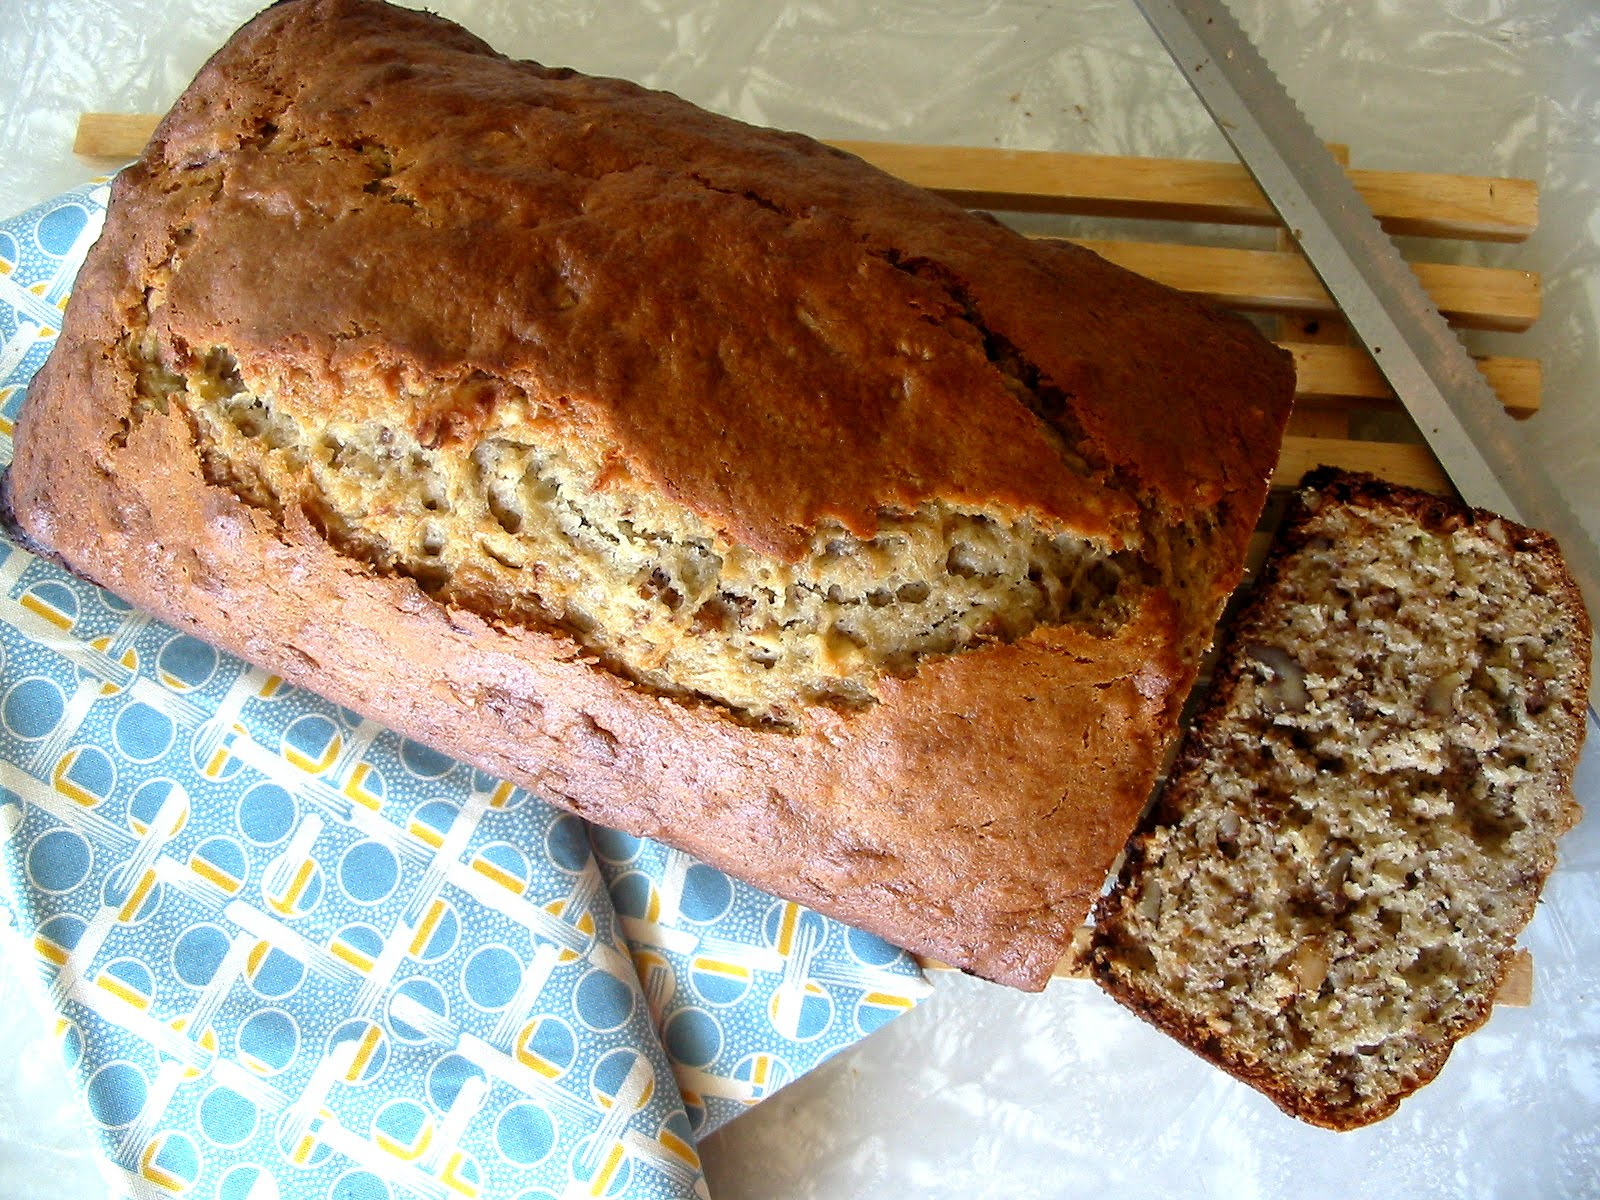 medicated-banana-bread-recipe